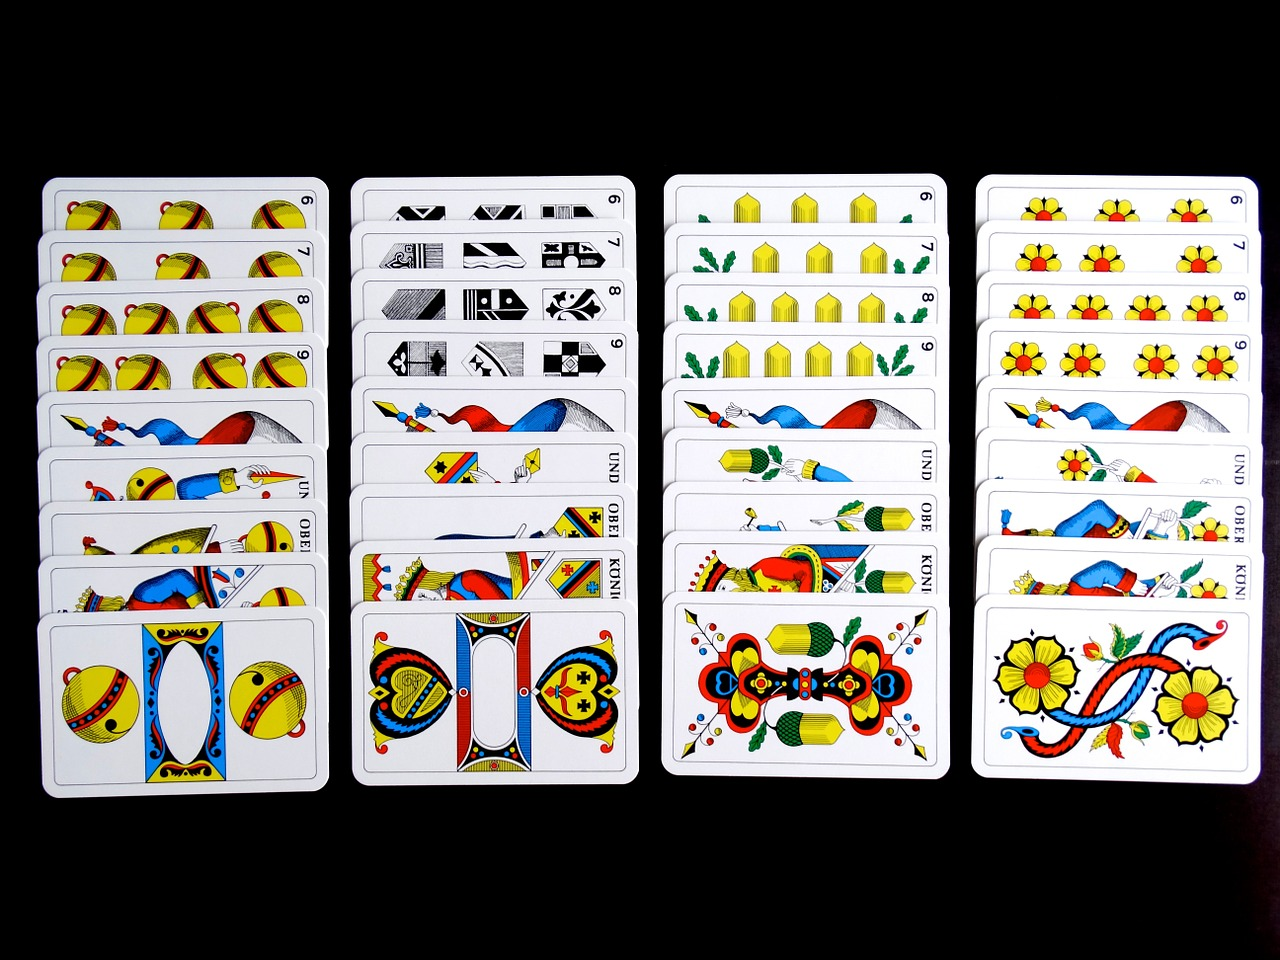 cards jass cards card game free picture